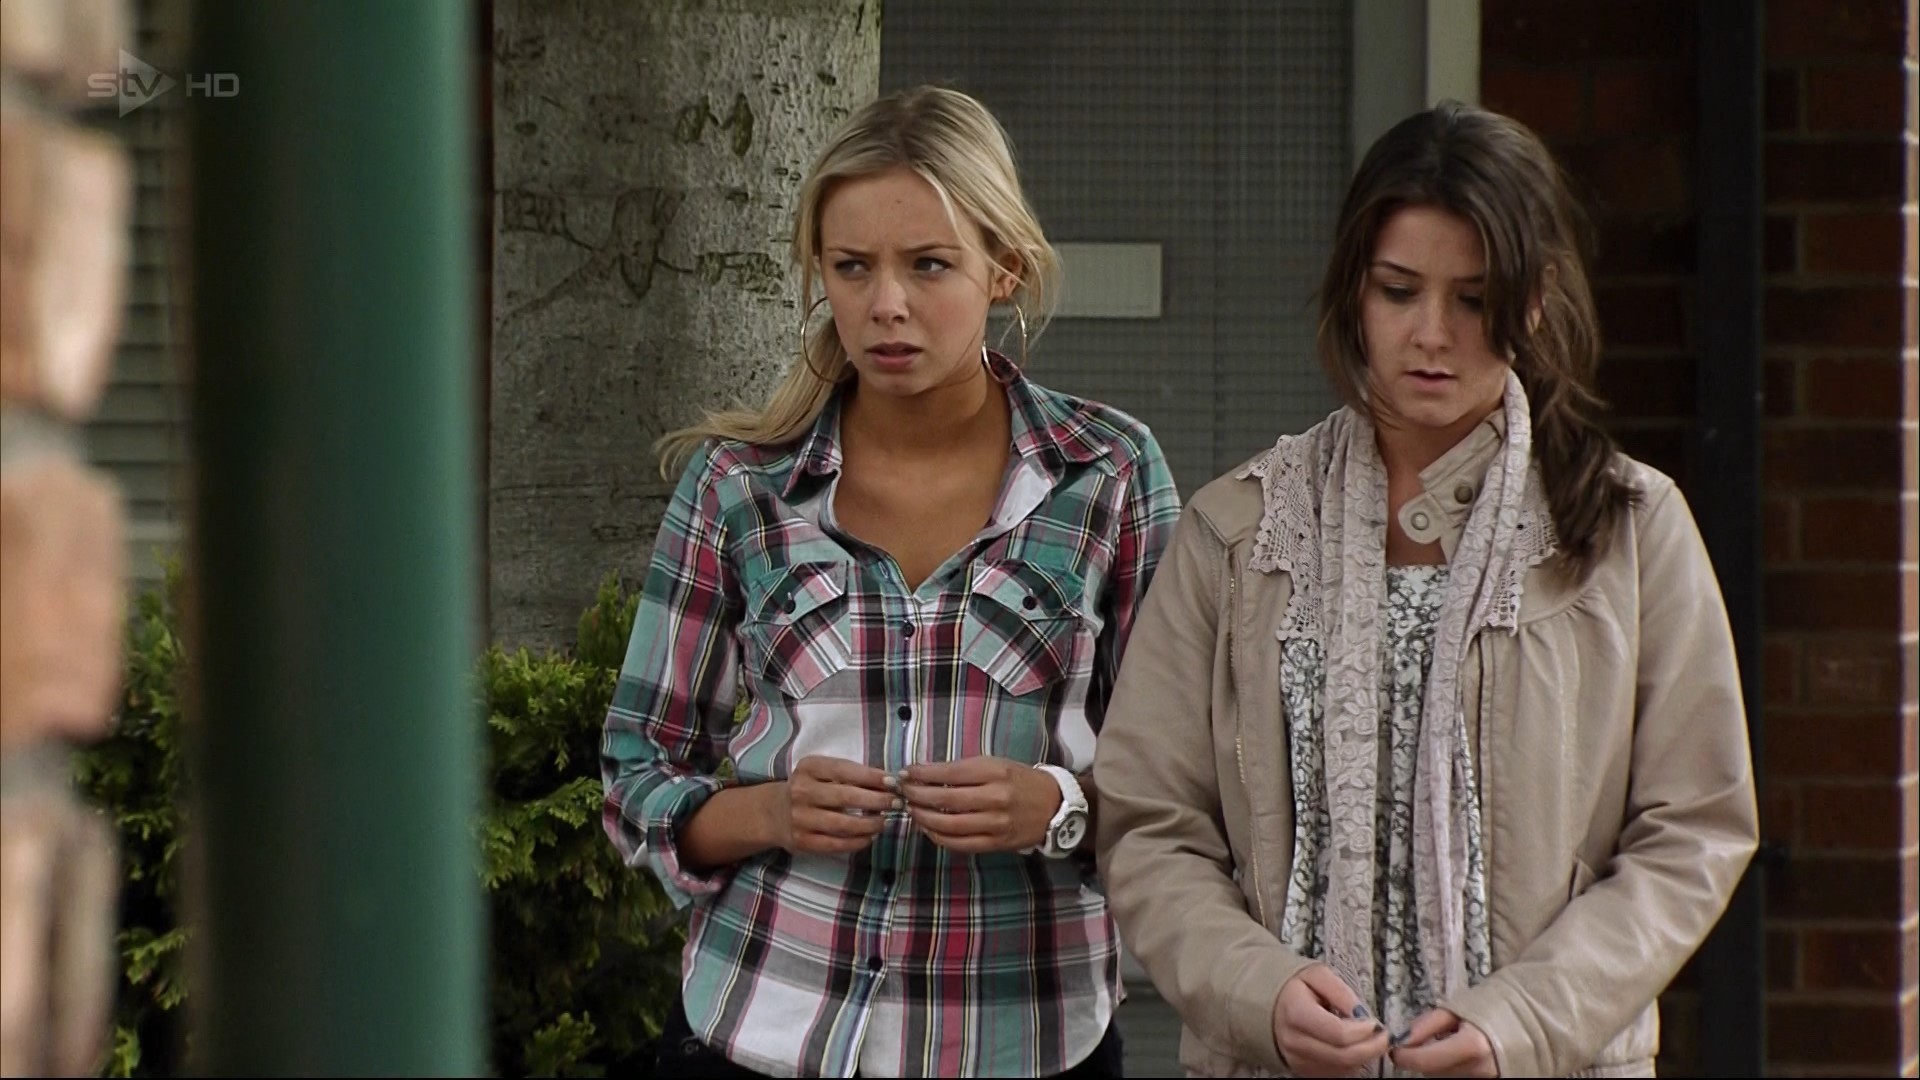 Sophie & Sian (Coronation Street) - 8 July 2011